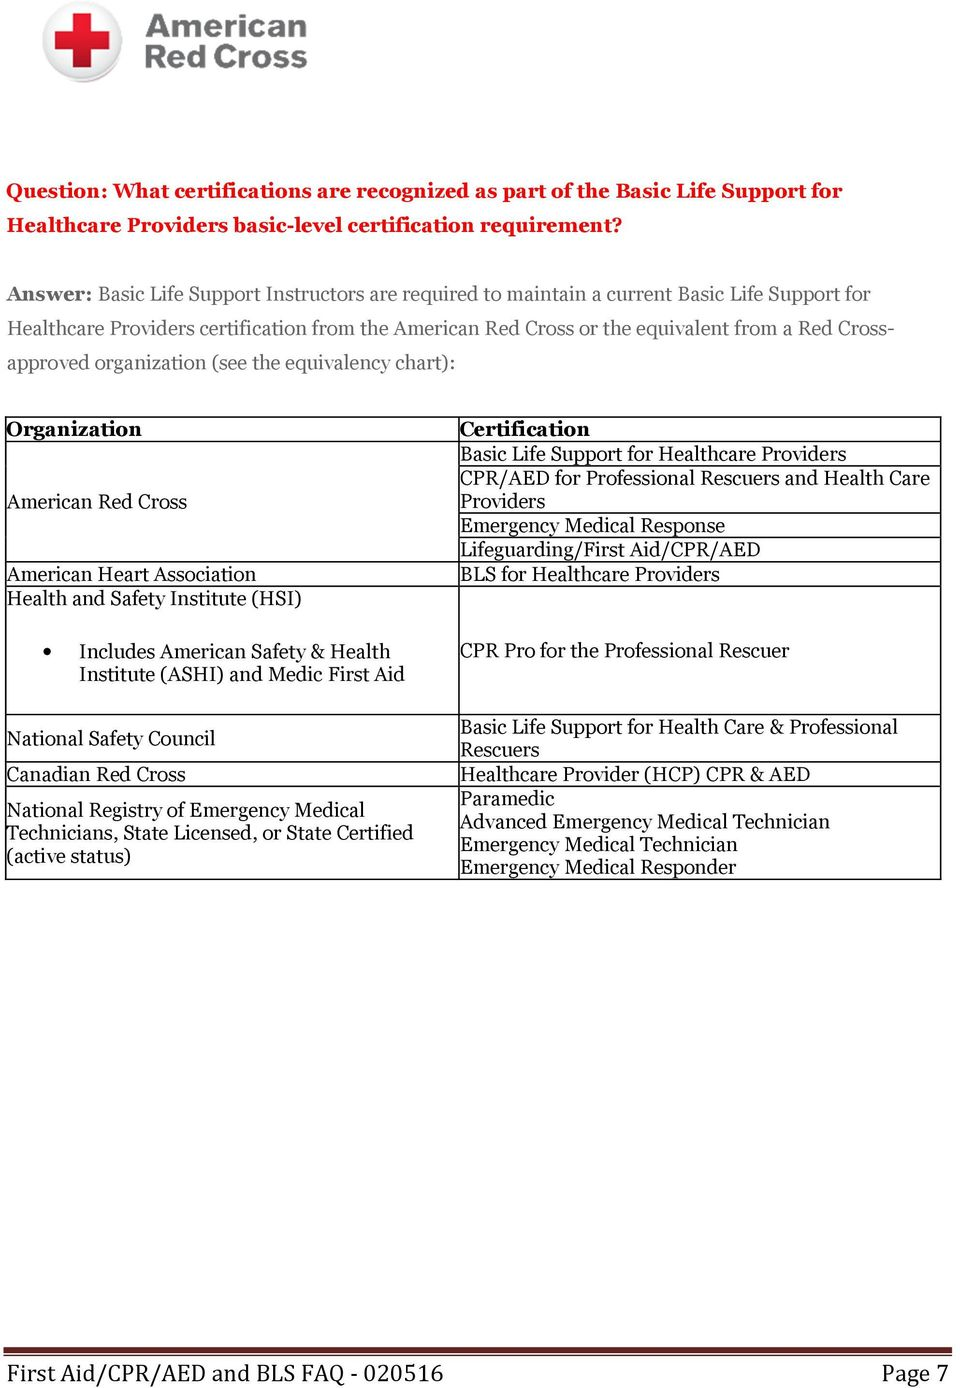 Bls For Healthcare Providers Certification Image Collections Free